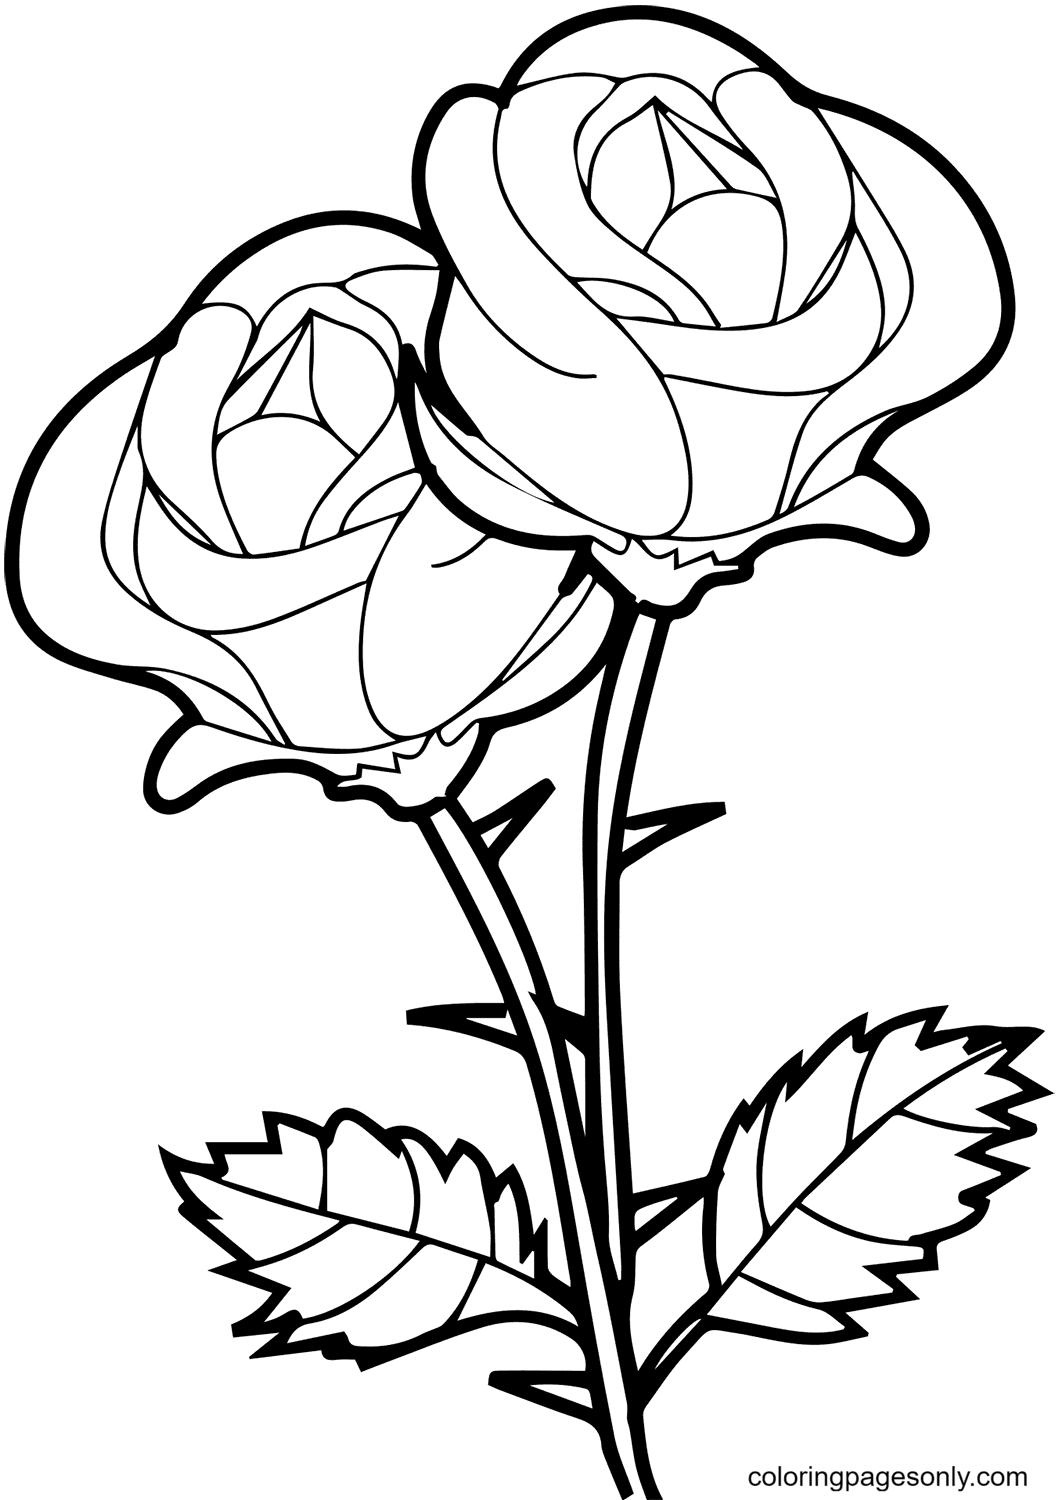 Two Simple Roses With Thorns Coloring Page